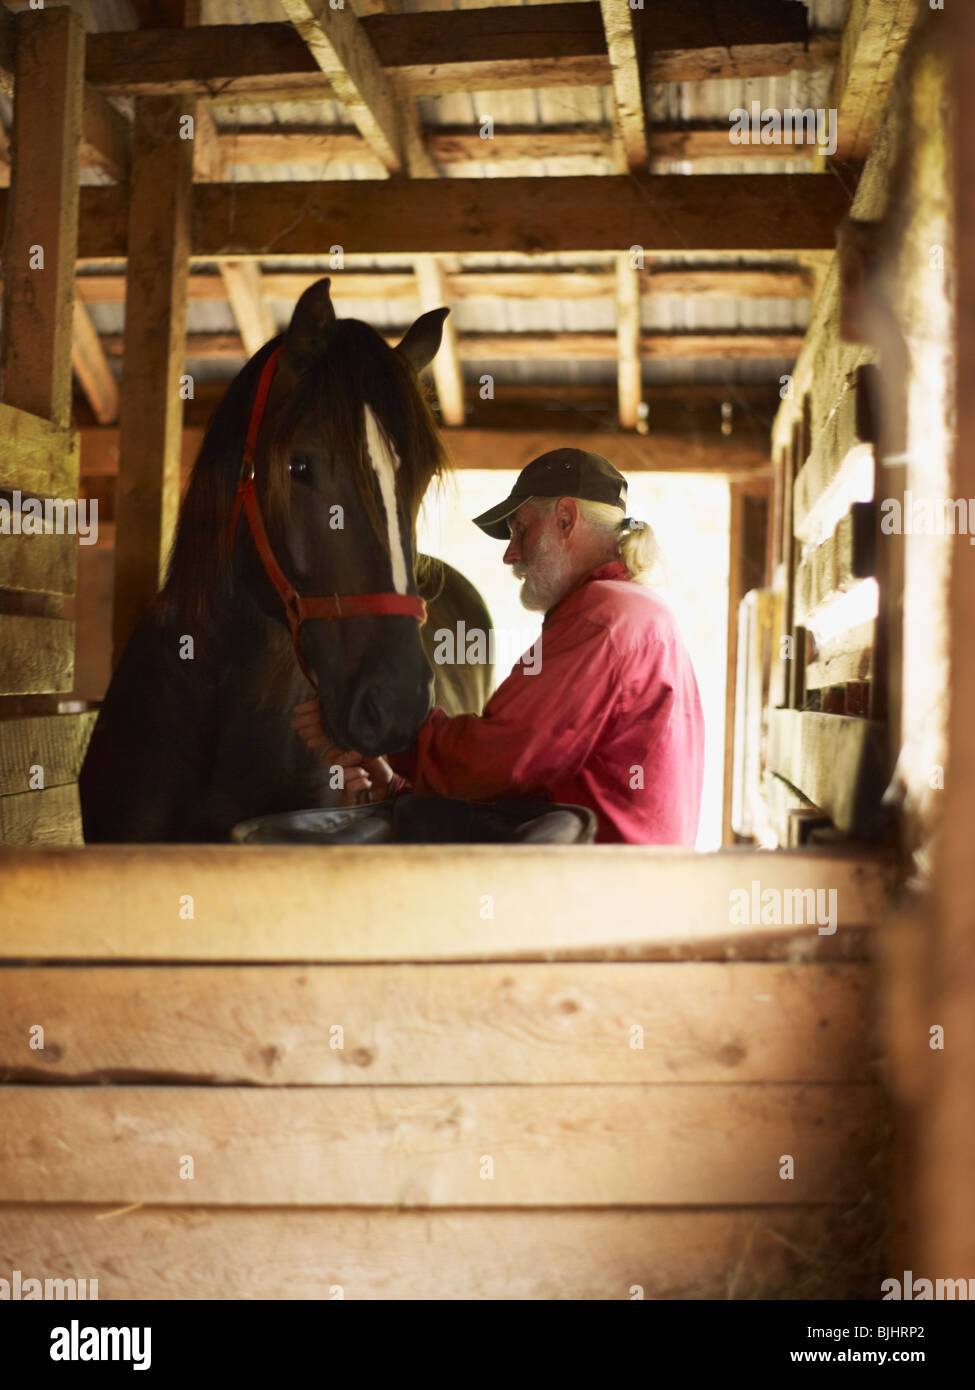 Man and horse in stable - Stock Image